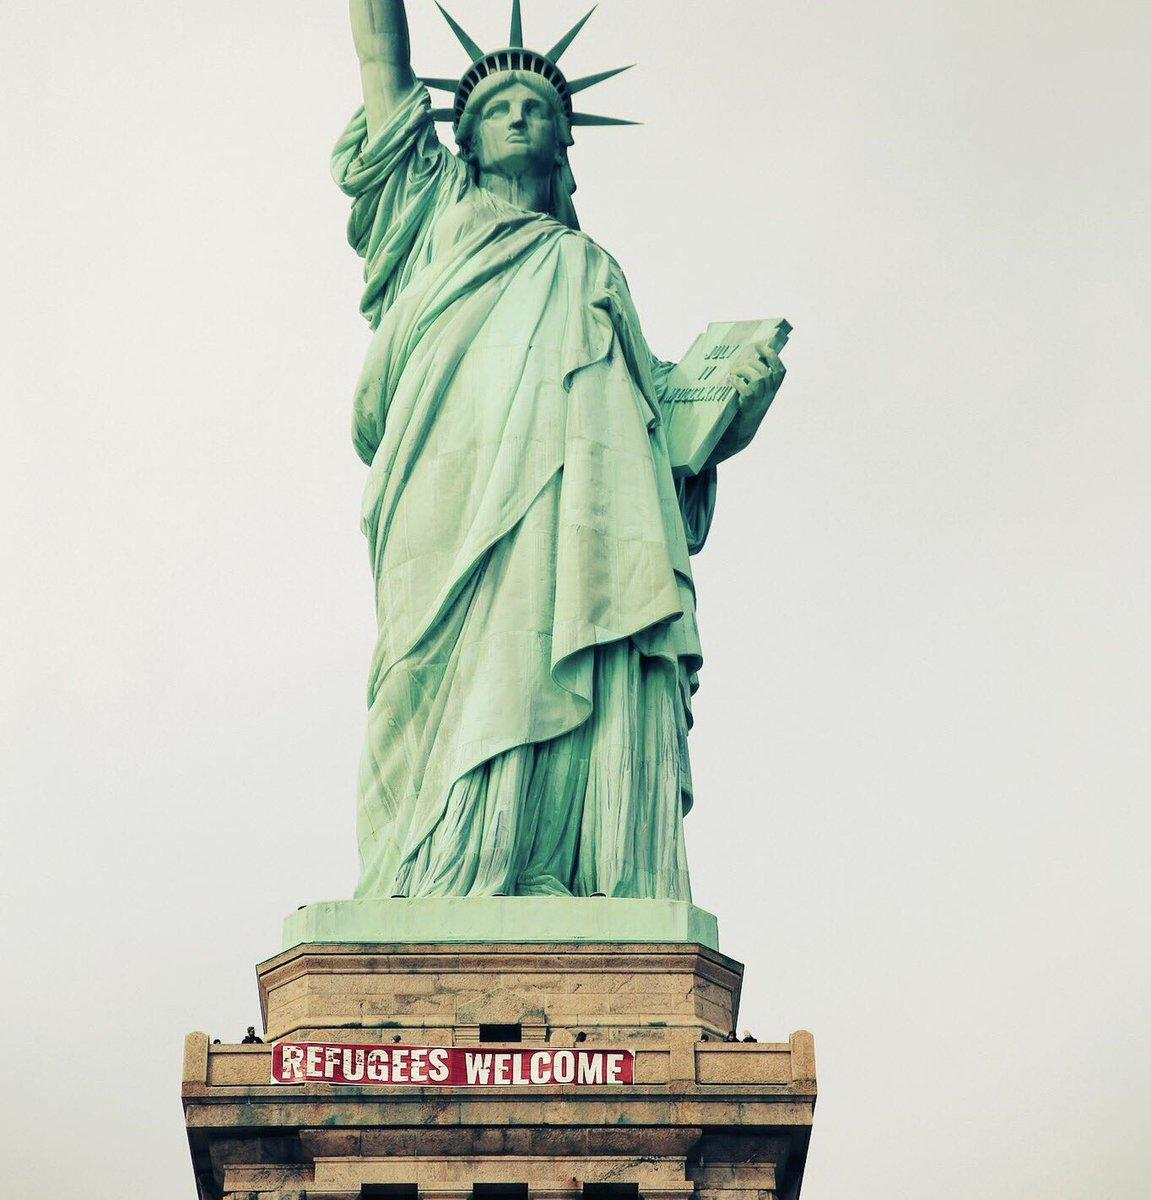 'Refugees Welcome' banner unfurled on pedestal of Statue of Liberty; United States Park Police working to identify suspects.